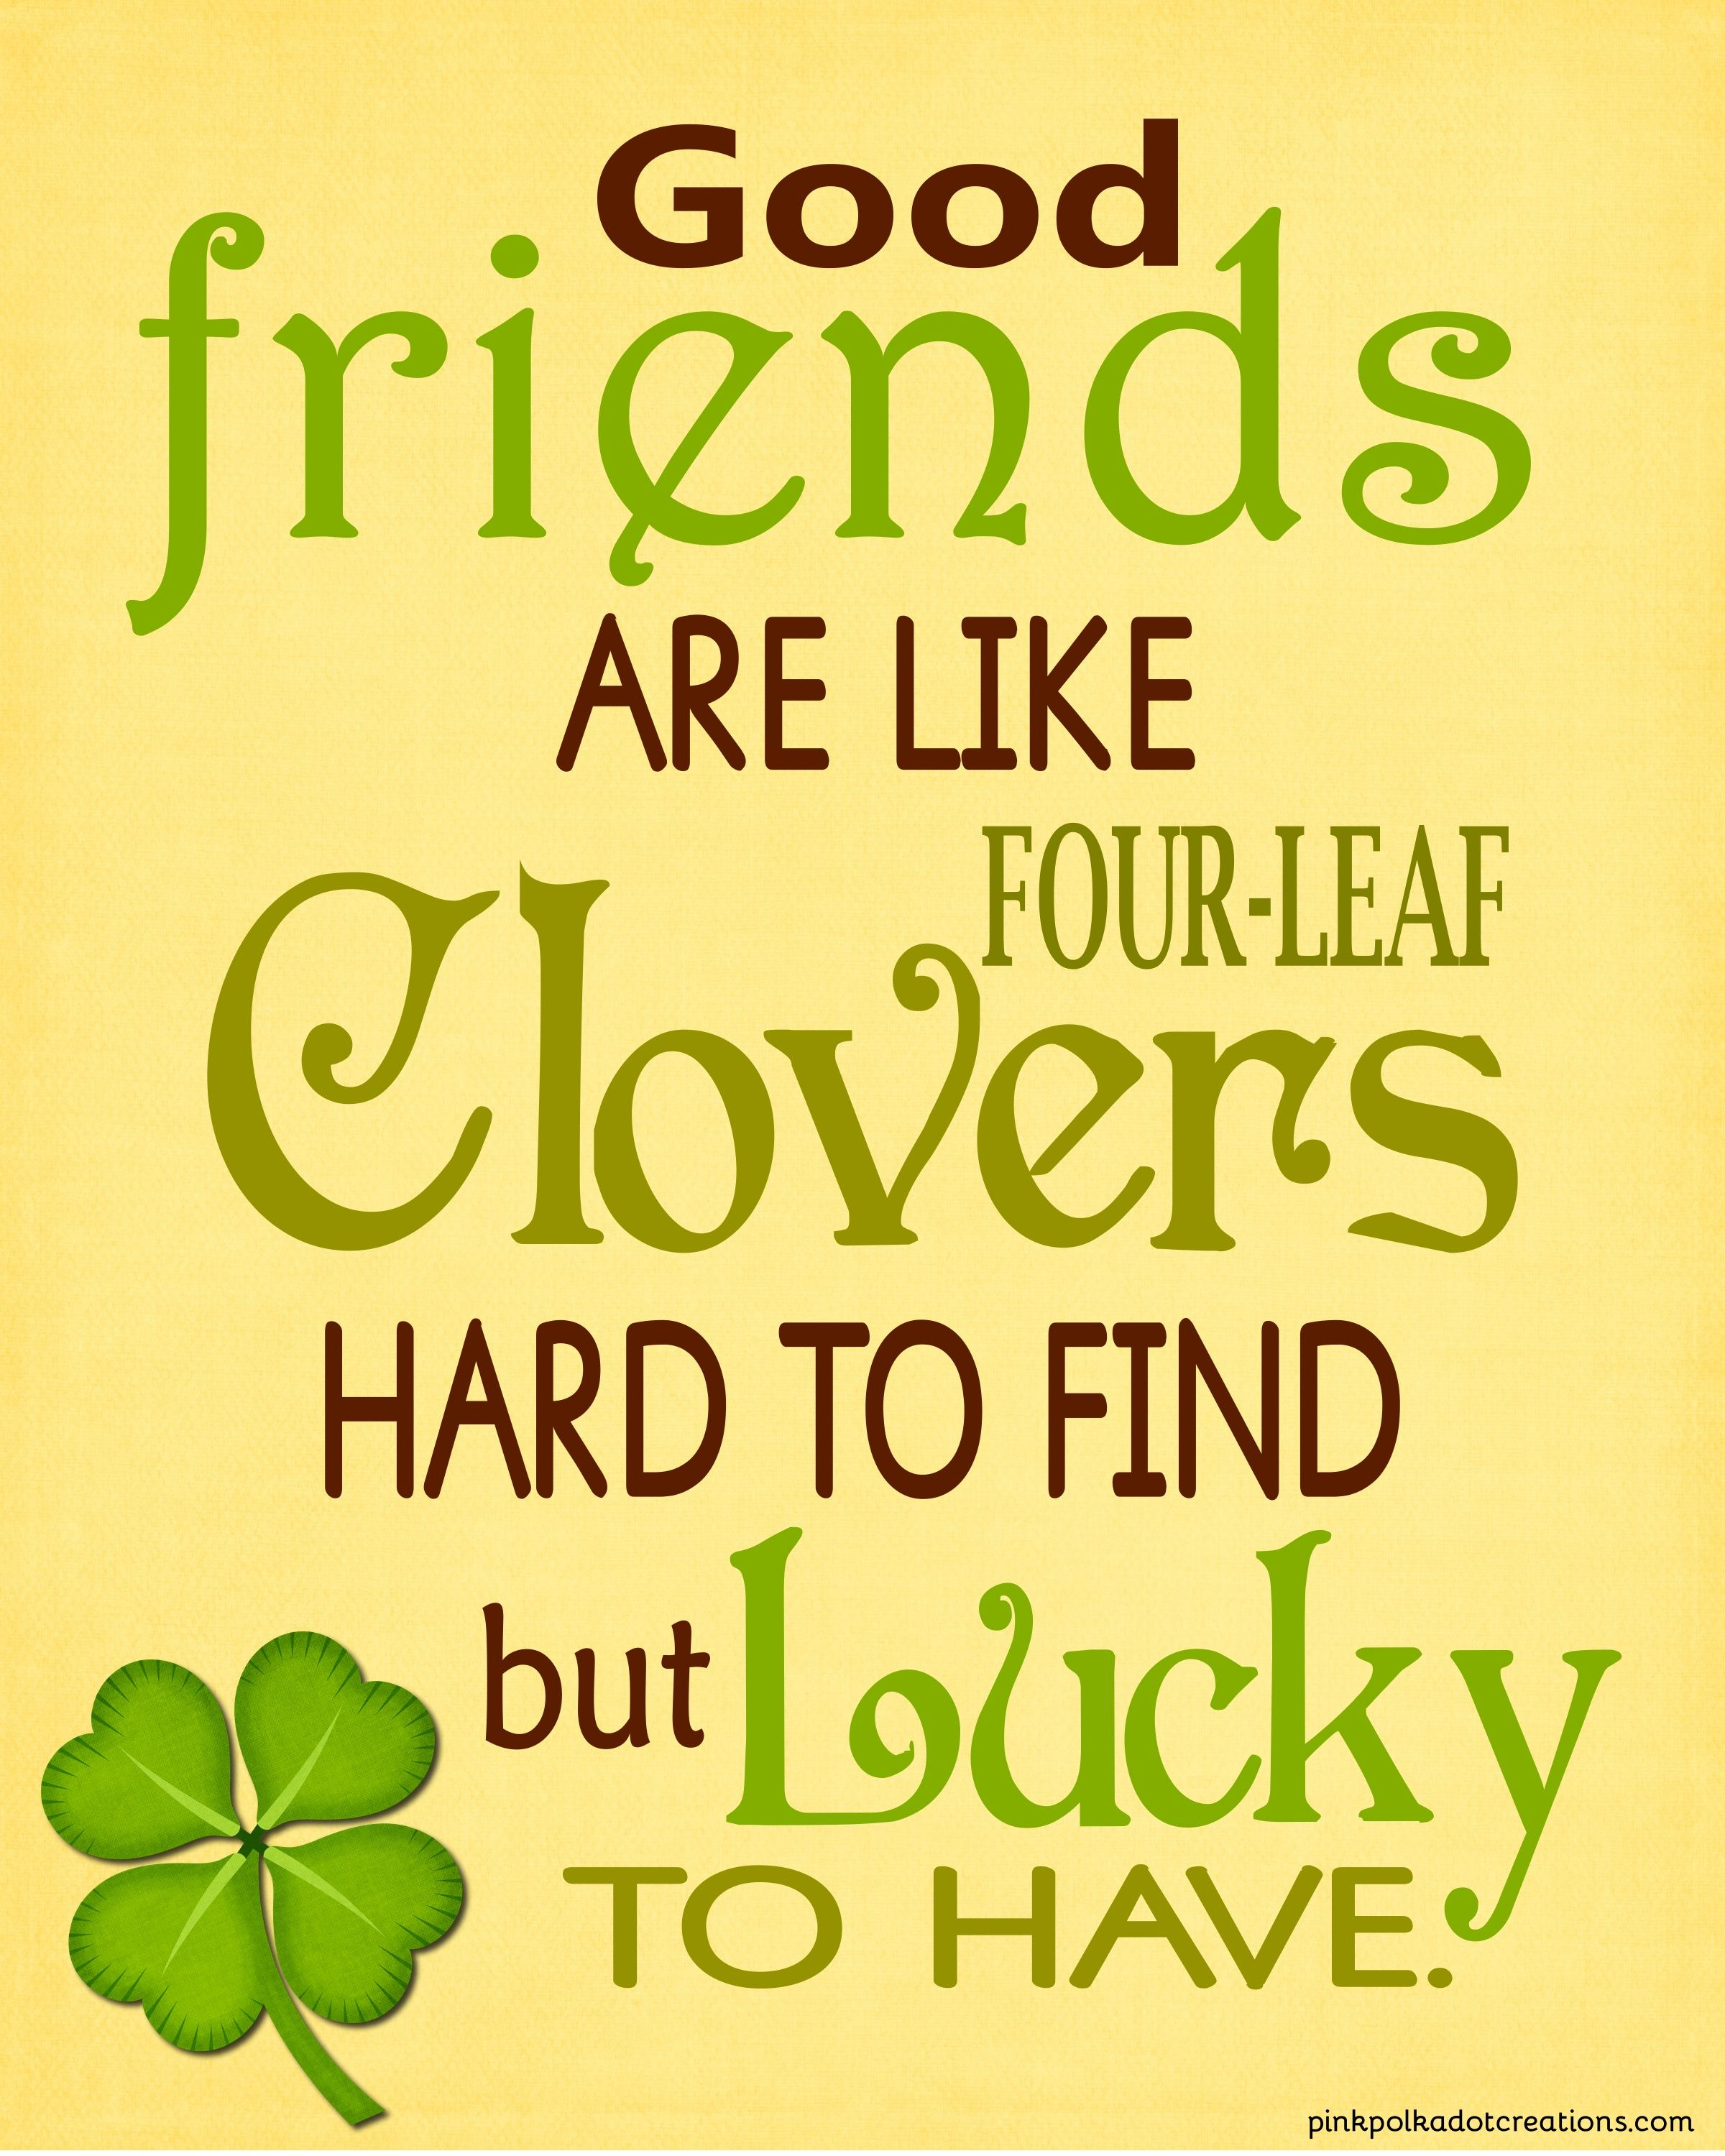 Thursday S Thought Good Friends Pink Polka Dot Creations St Patricks Day Quotes Cool Words Friends Are Like